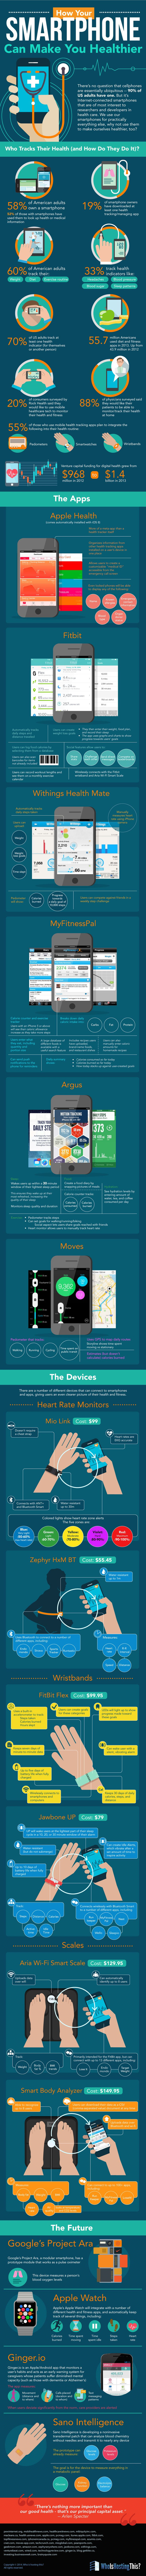 How Your Smartphone Can Make You Healthier #infographic #Smartphone #Health…